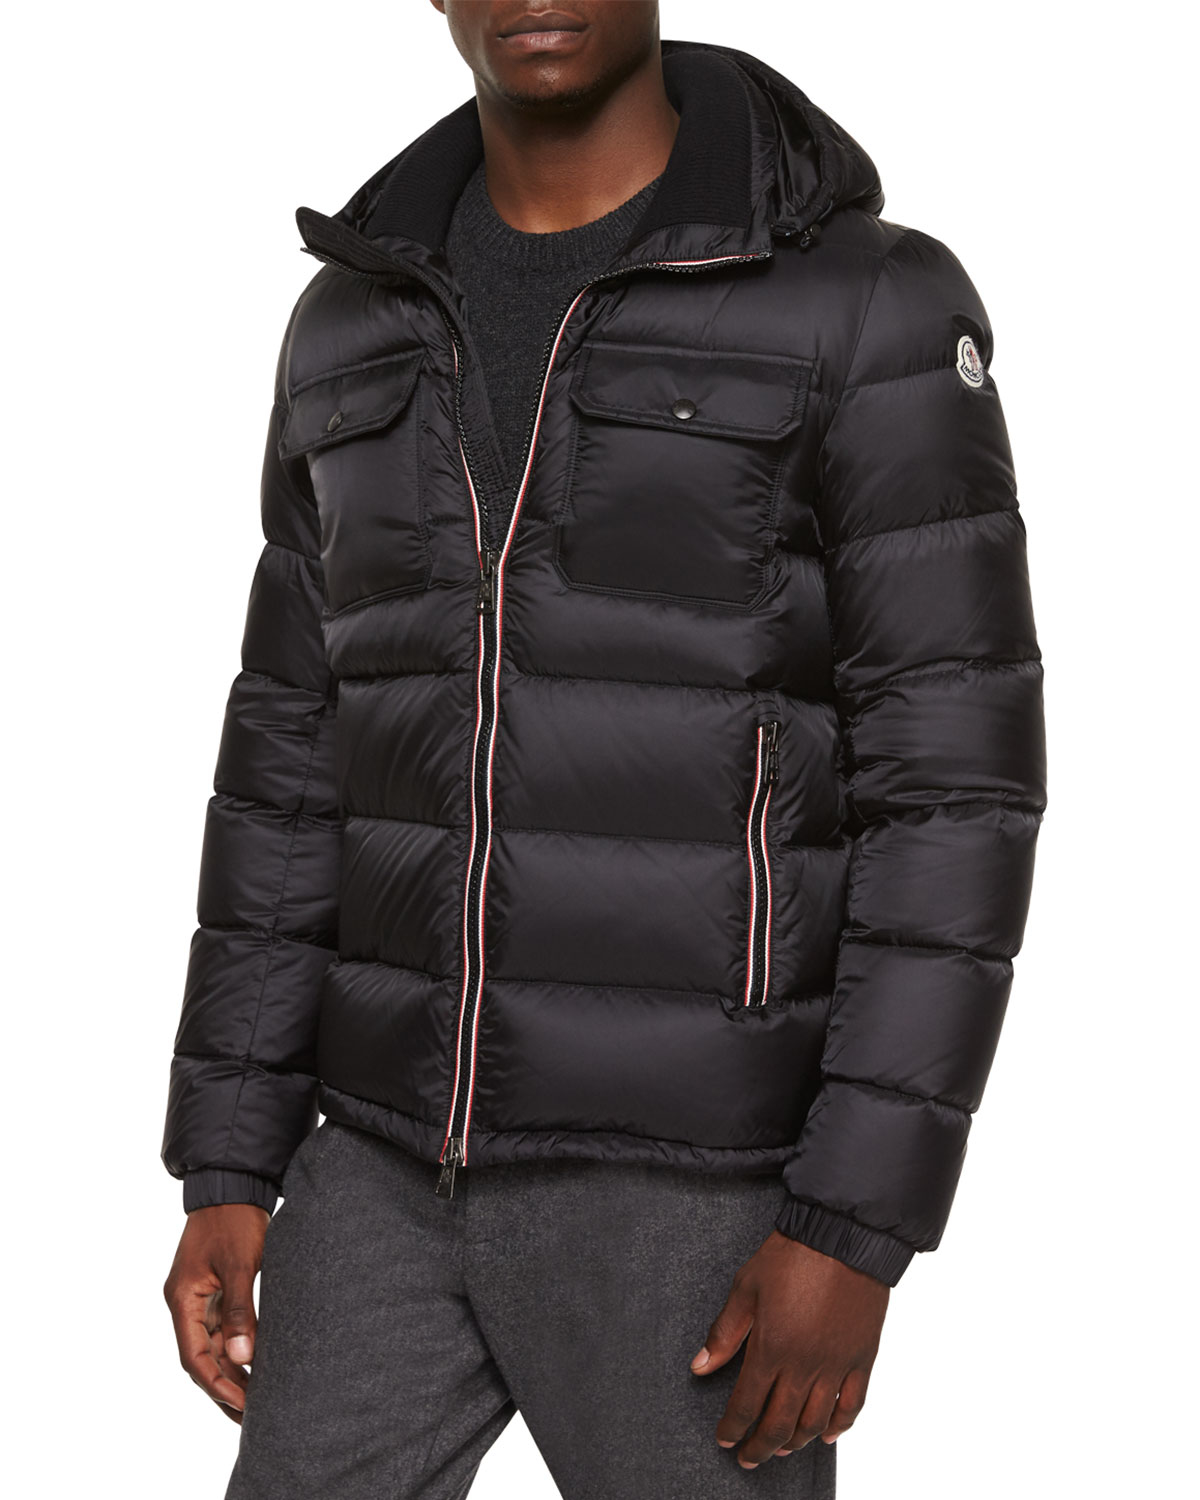 moncler demar quilted puffer jacket in black for men lyst. Black Bedroom Furniture Sets. Home Design Ideas